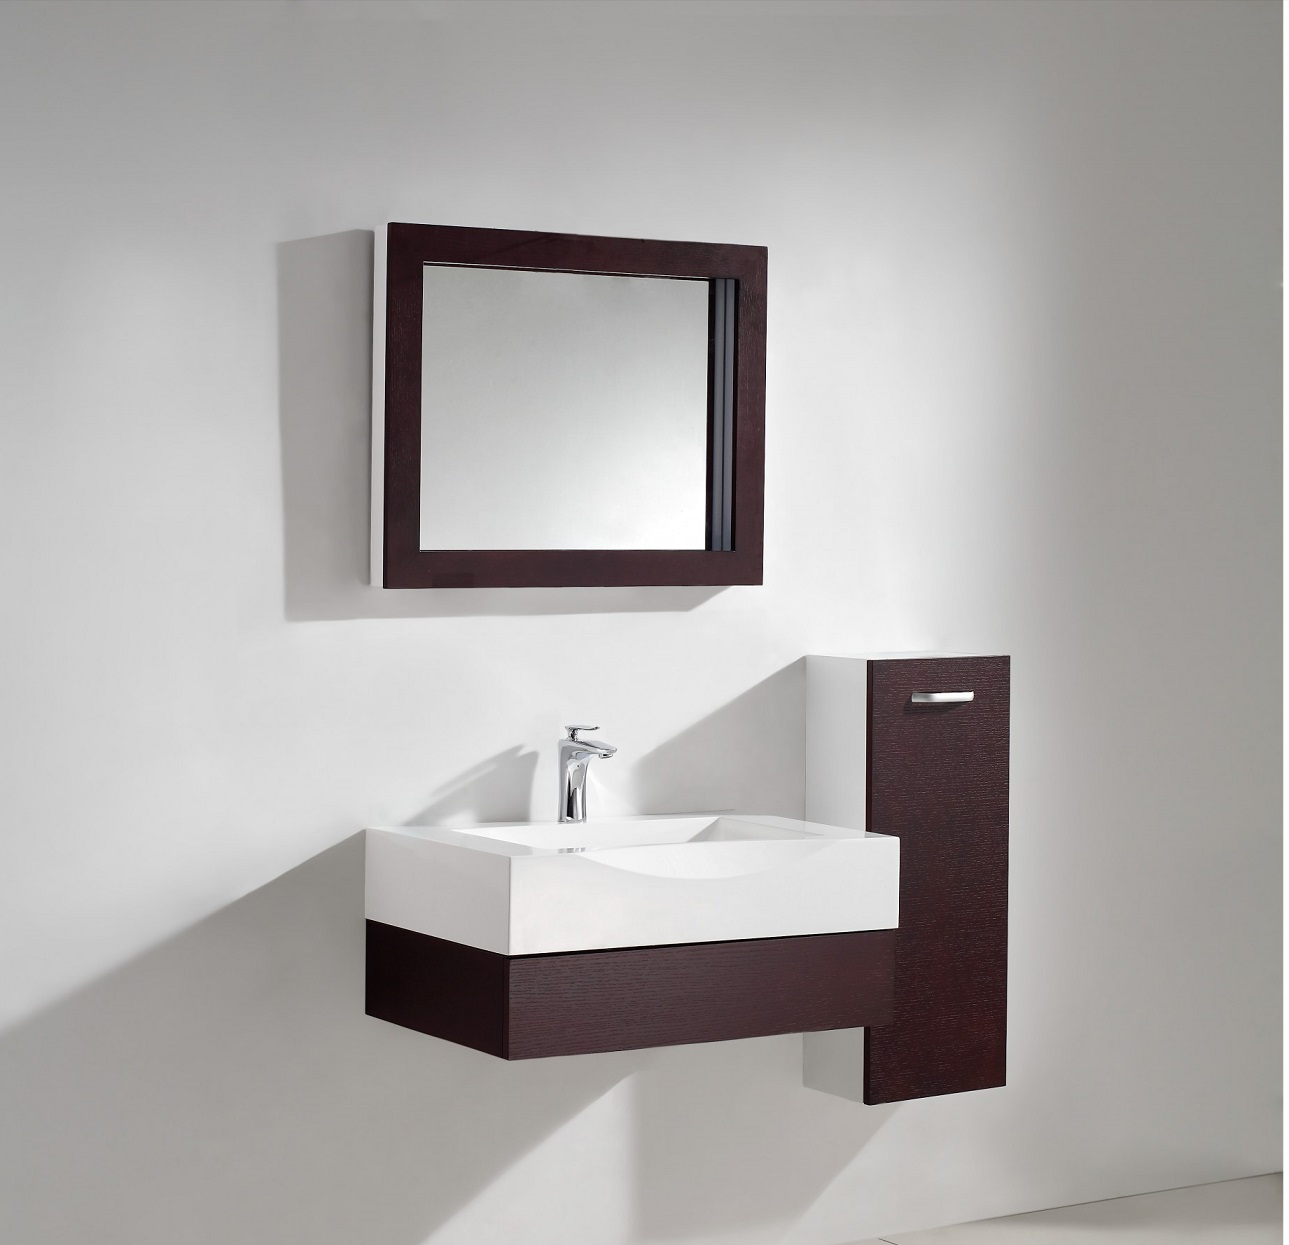 Aura Modern Bathroom Vanity Set with Side Cabinet and LED Mirror 29.5quot;